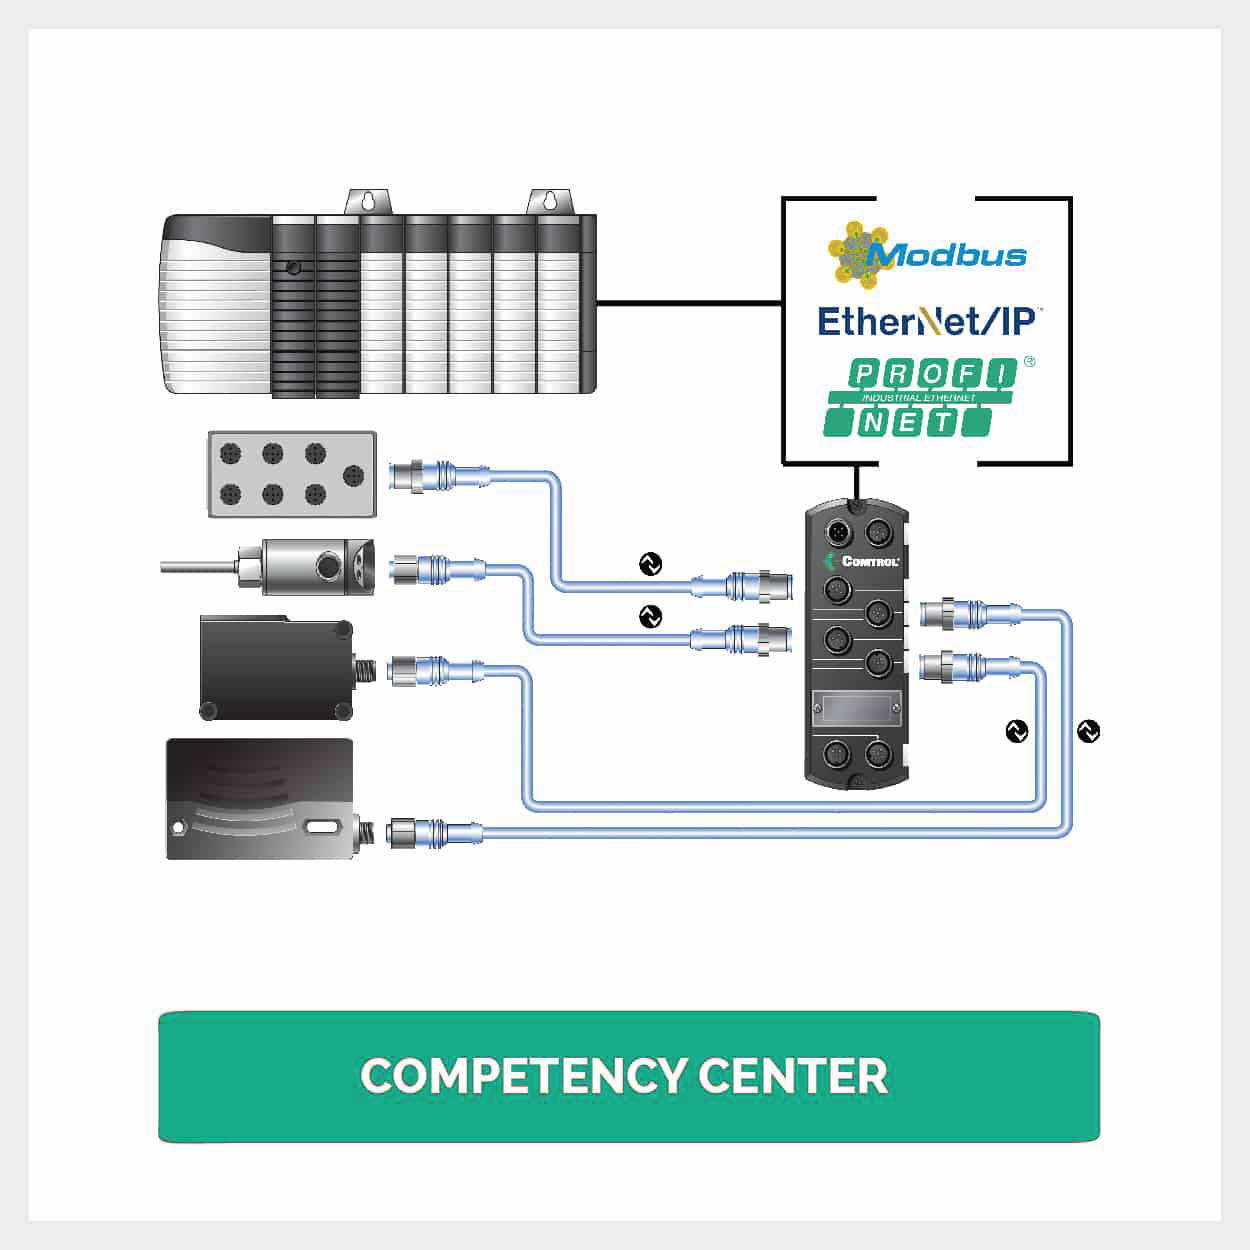 Competency Center2 - IO-Link Master Gateway PROFINET IO